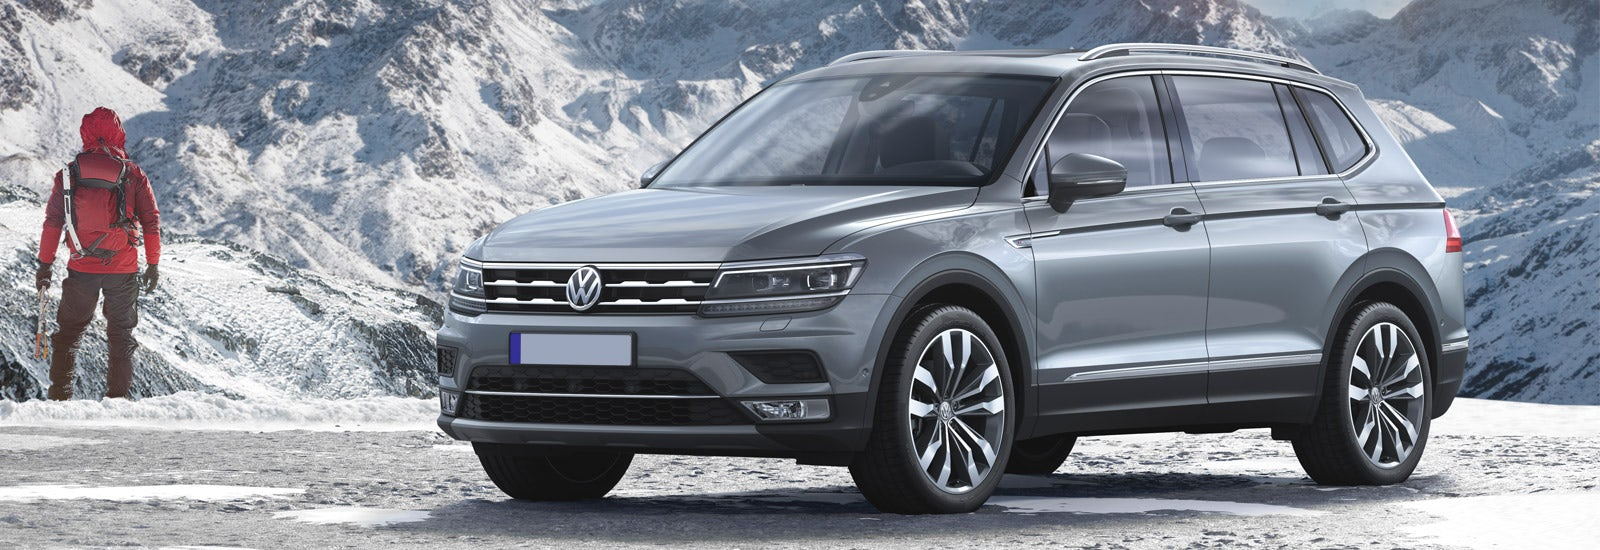 new car uk release dates2017 VW Tiguan 7seater price specs release date  carwow